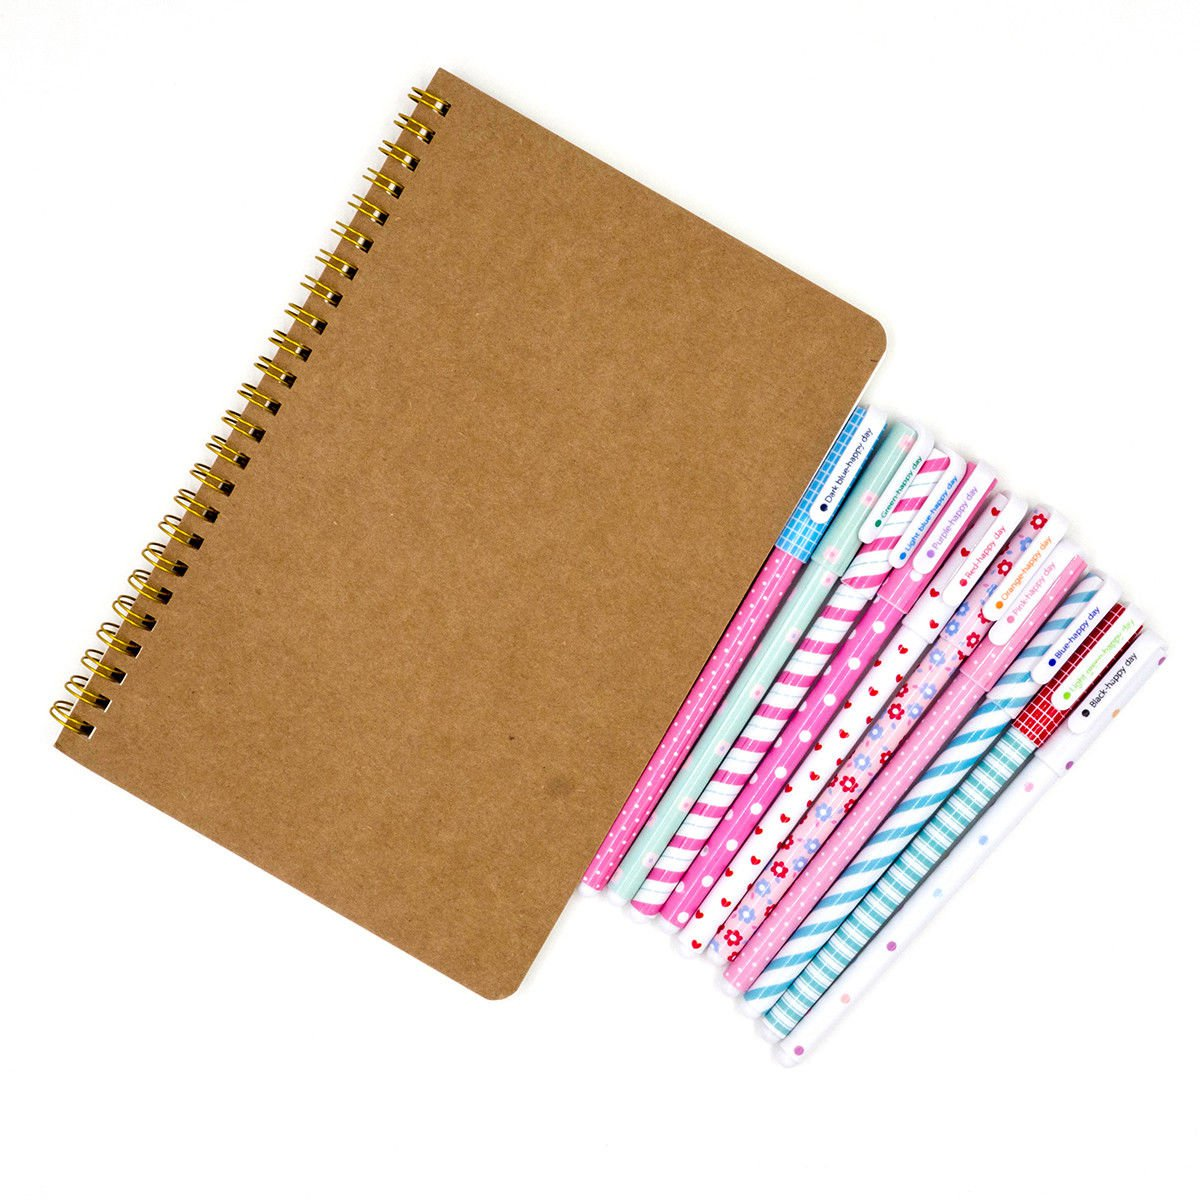 Bullet Journal Kit - A5 Tan Cover Dot Grid Spiral Notebook with 10 Color Pens